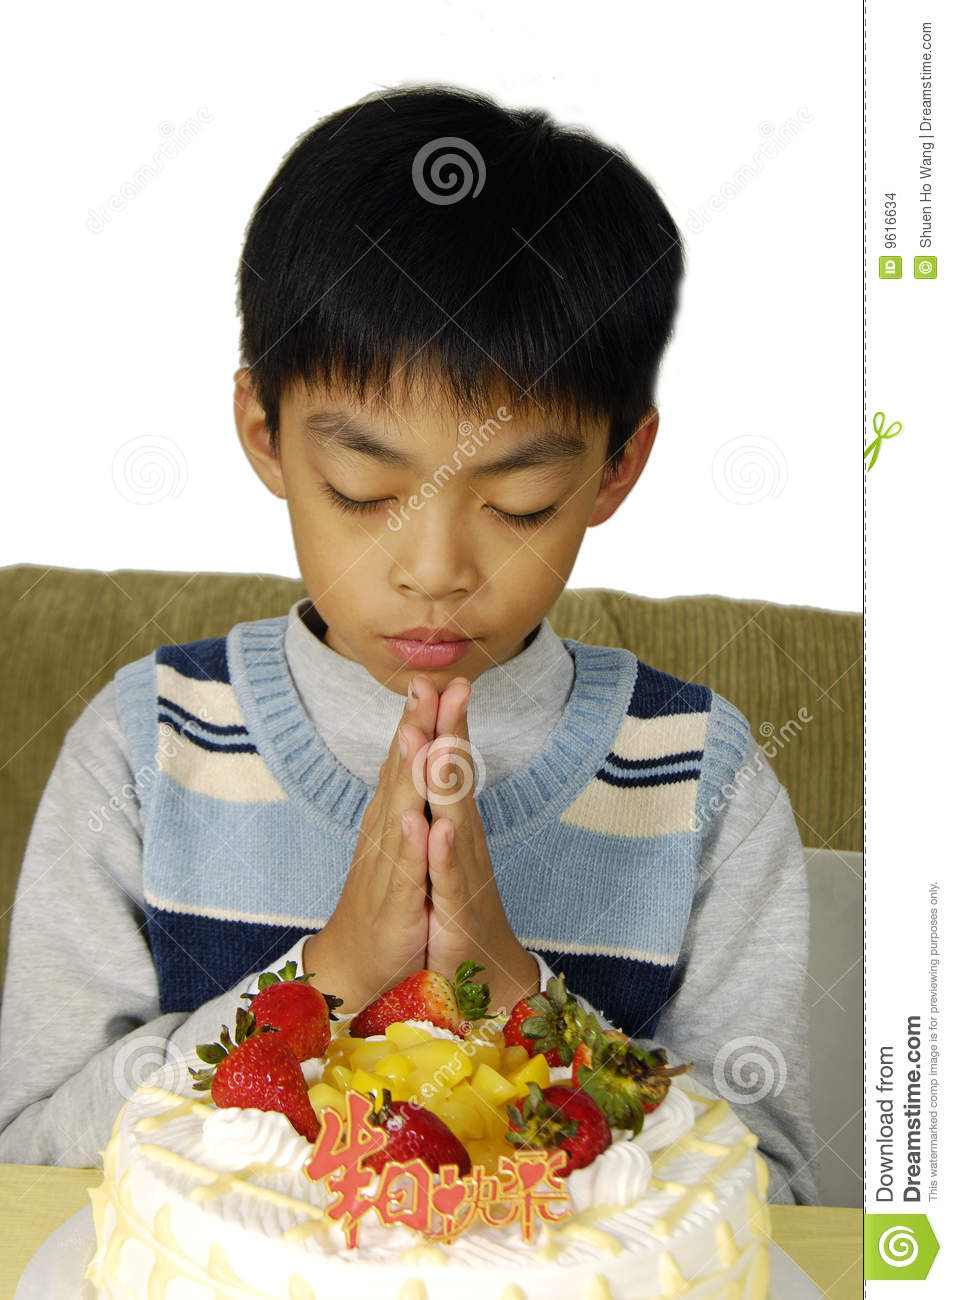 Boy Birthday Wishes Stock Photo Image Of Male Beautiful